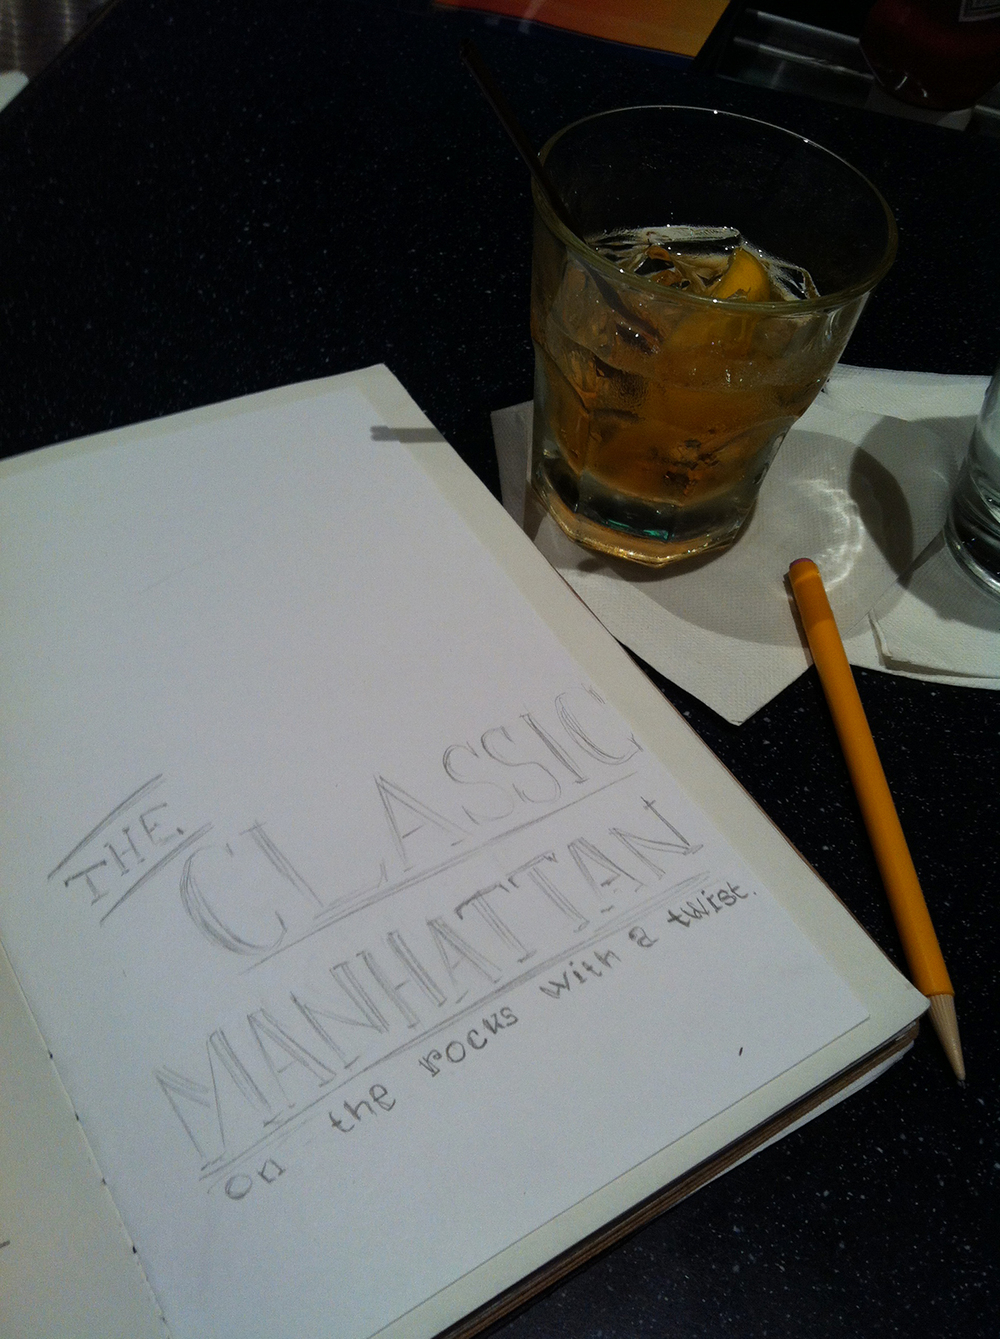 May 23: Doodling at the airport bar. Heading back to Mass for a long weekend.